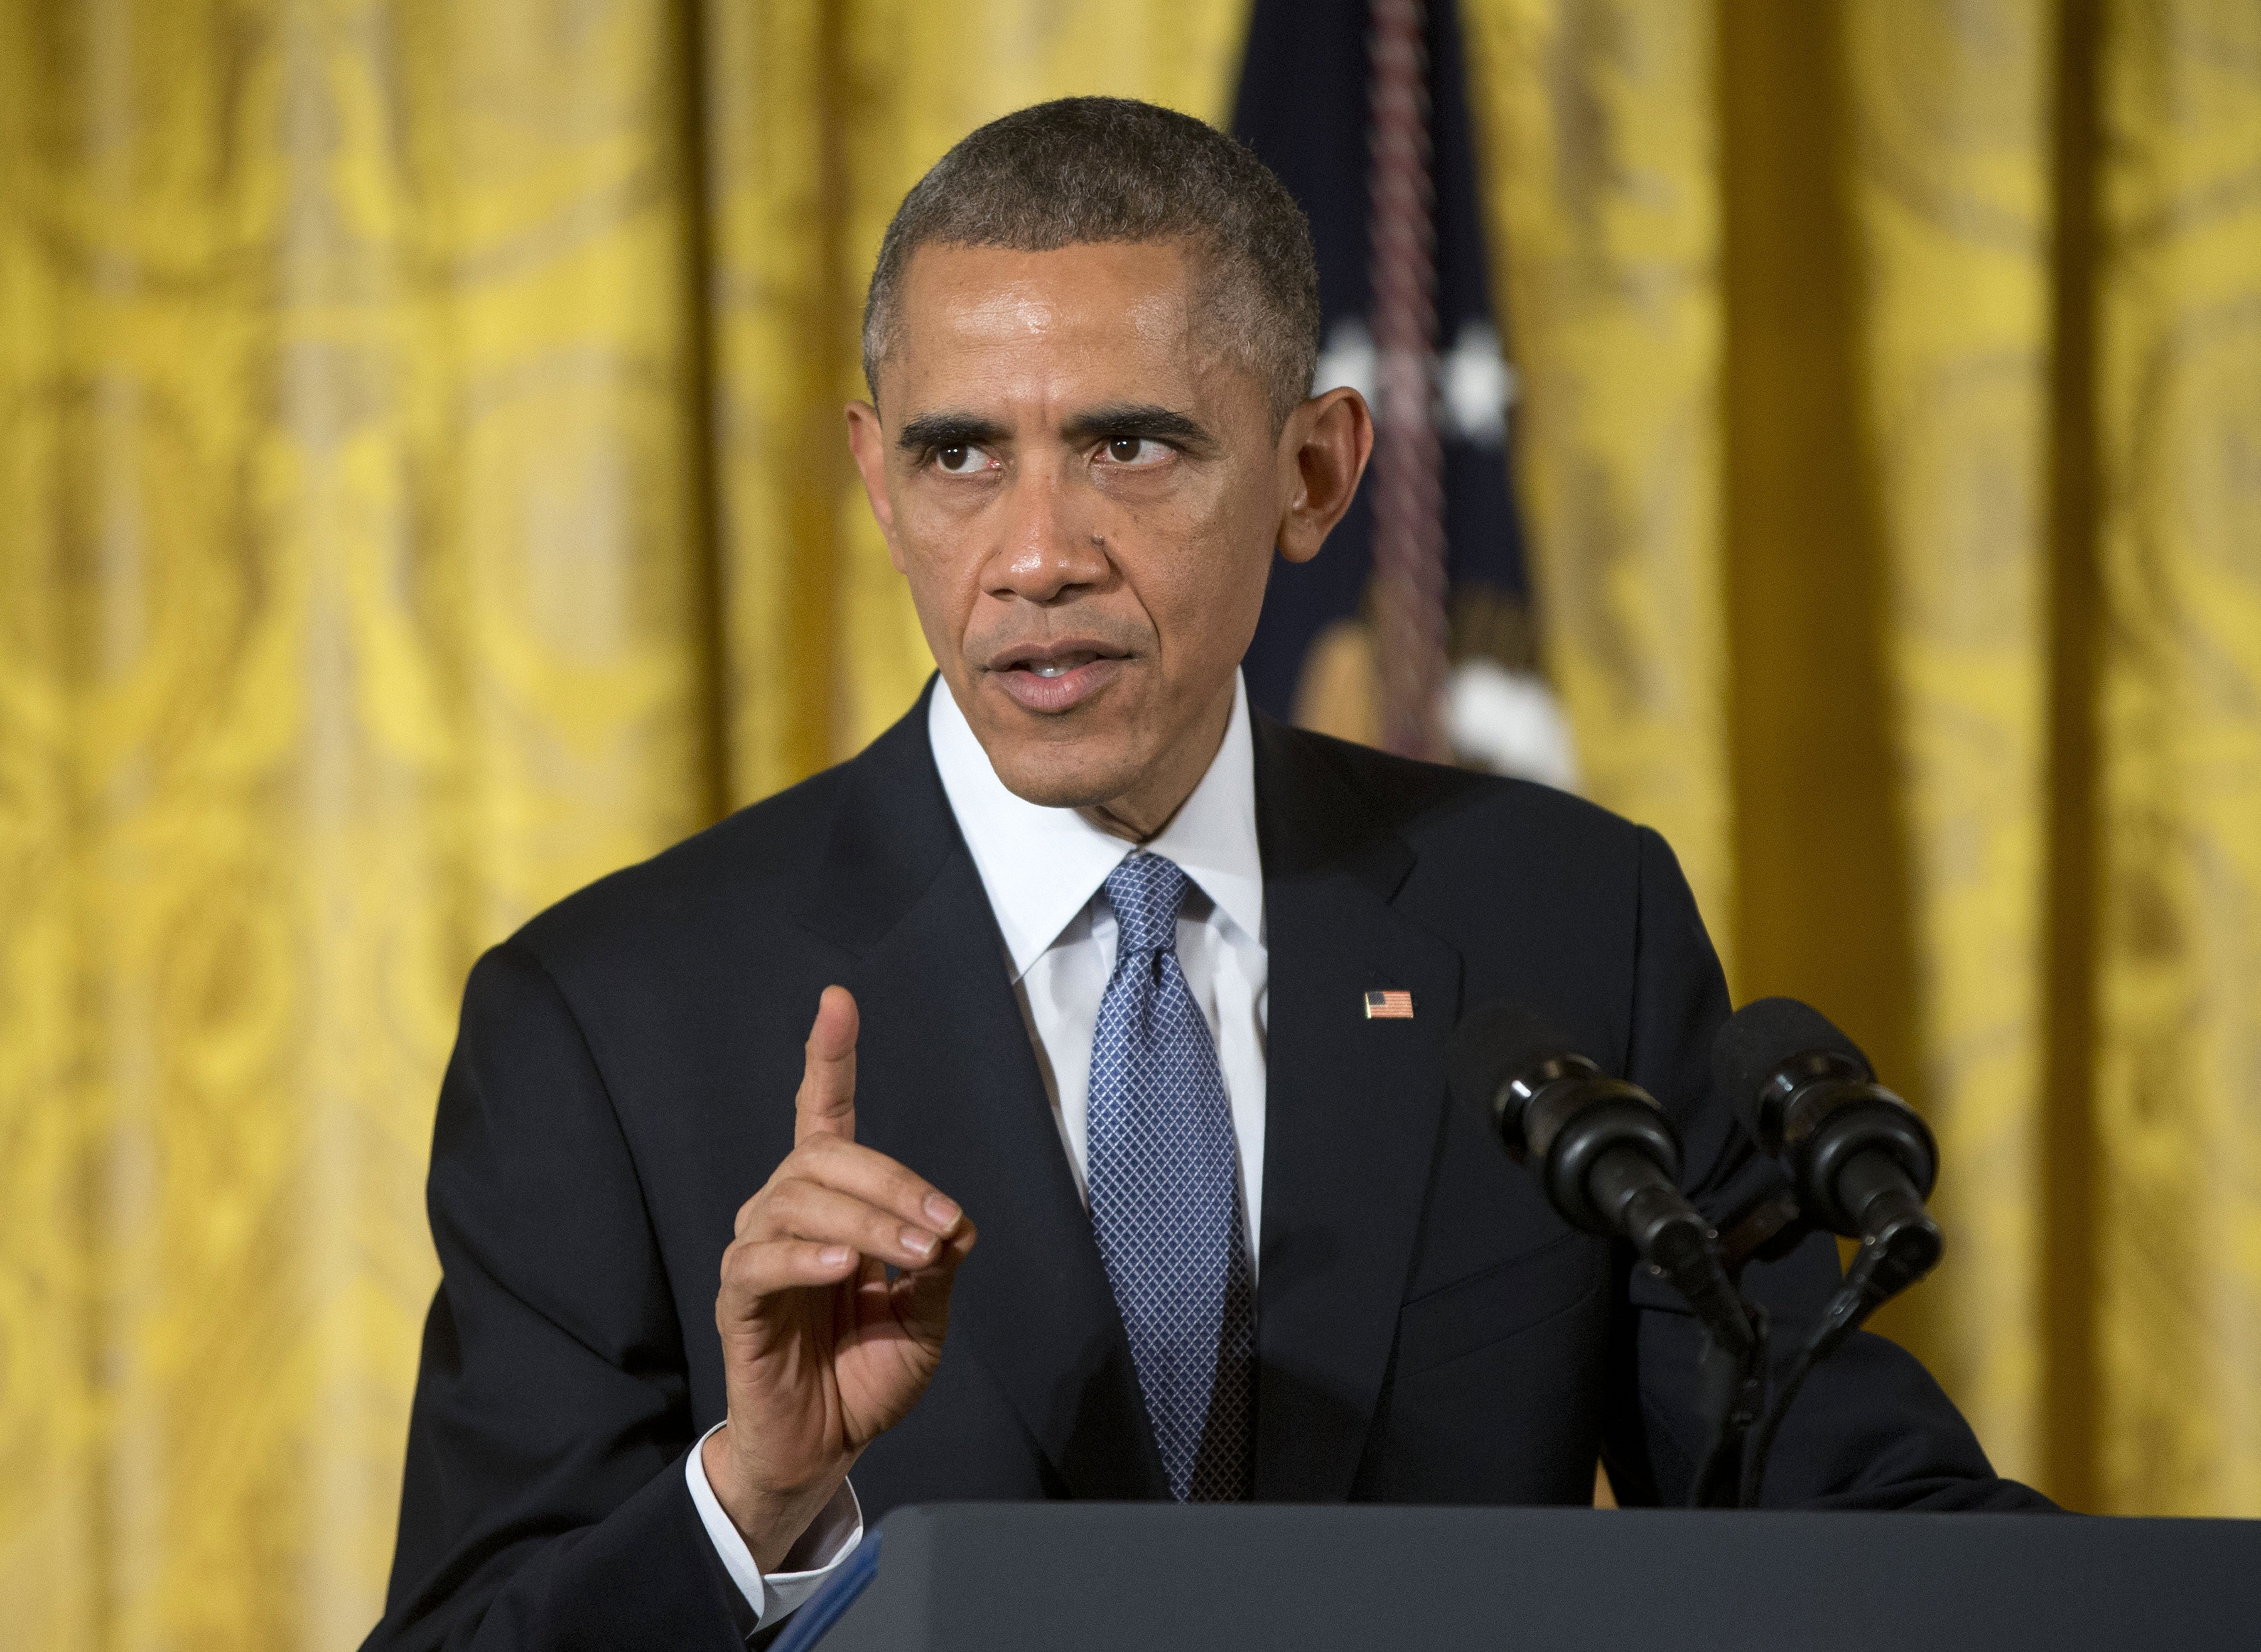 President Barack Obama speaks at the 'ConnectED to the Future', in the East Room of the White House in Washington D.C. on Nov. 19, 2014.